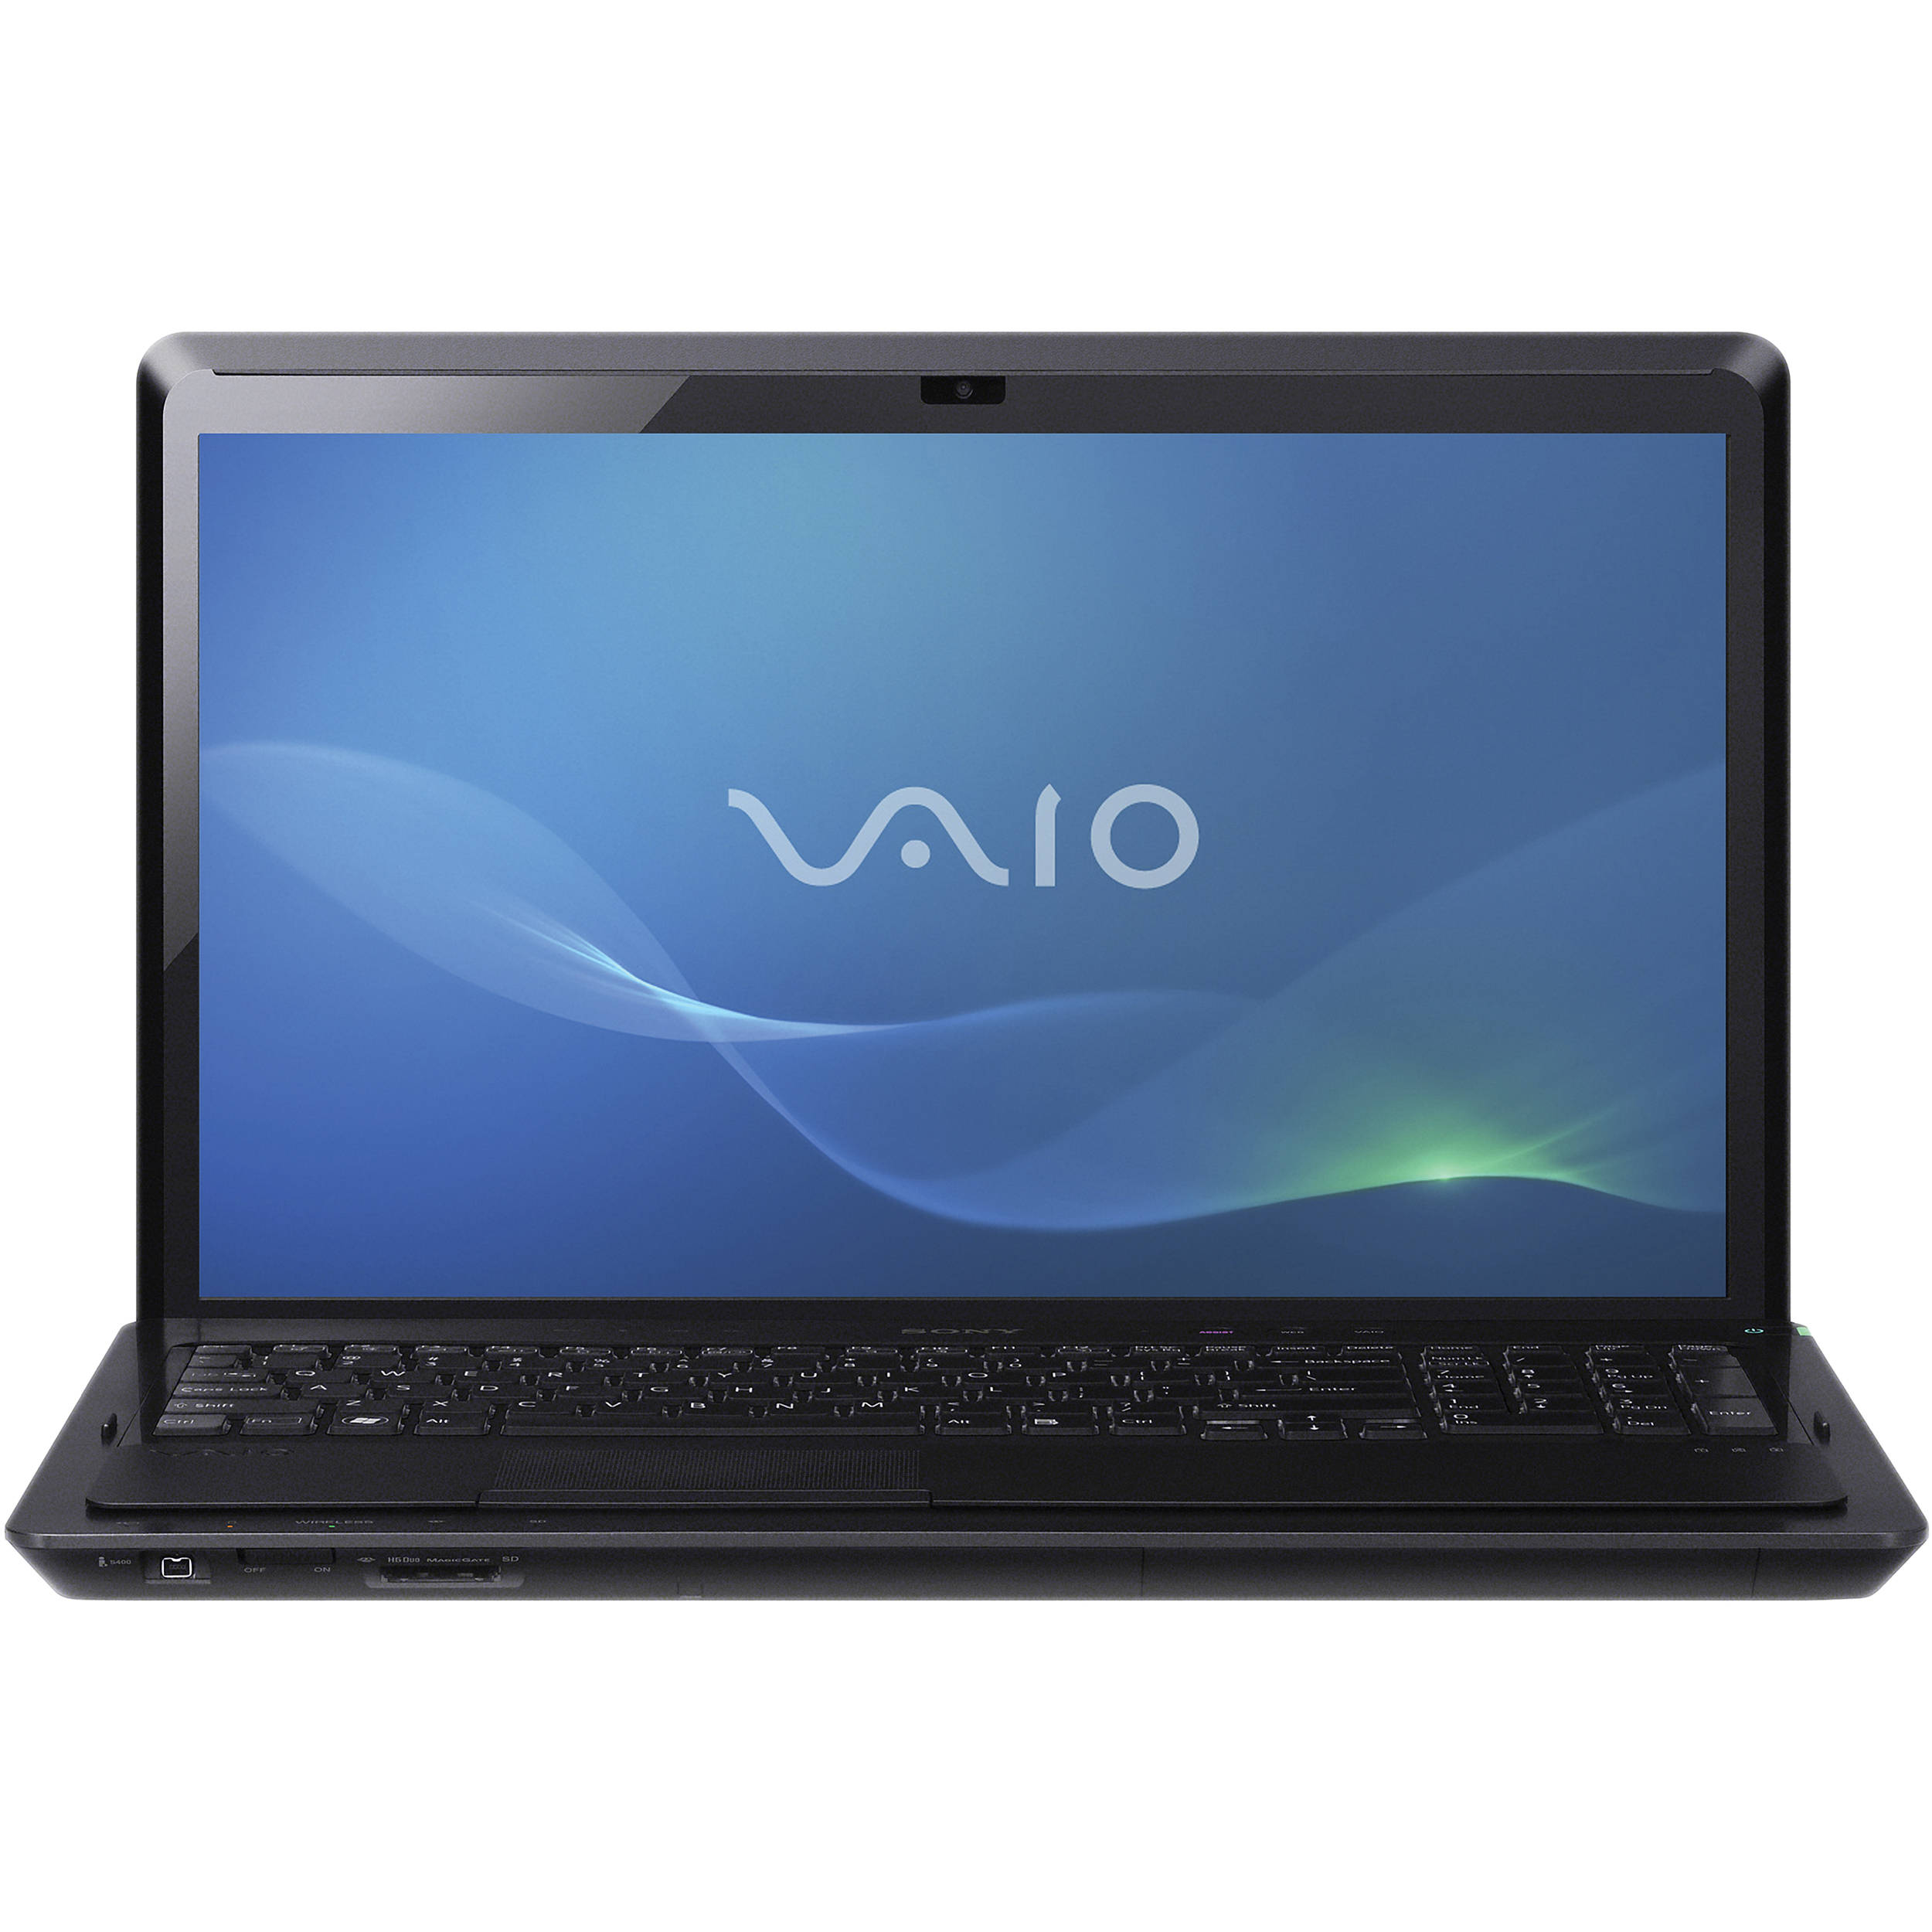 Sony Vaio VPCF22KFX/B Shared Library Driver for Mac Download